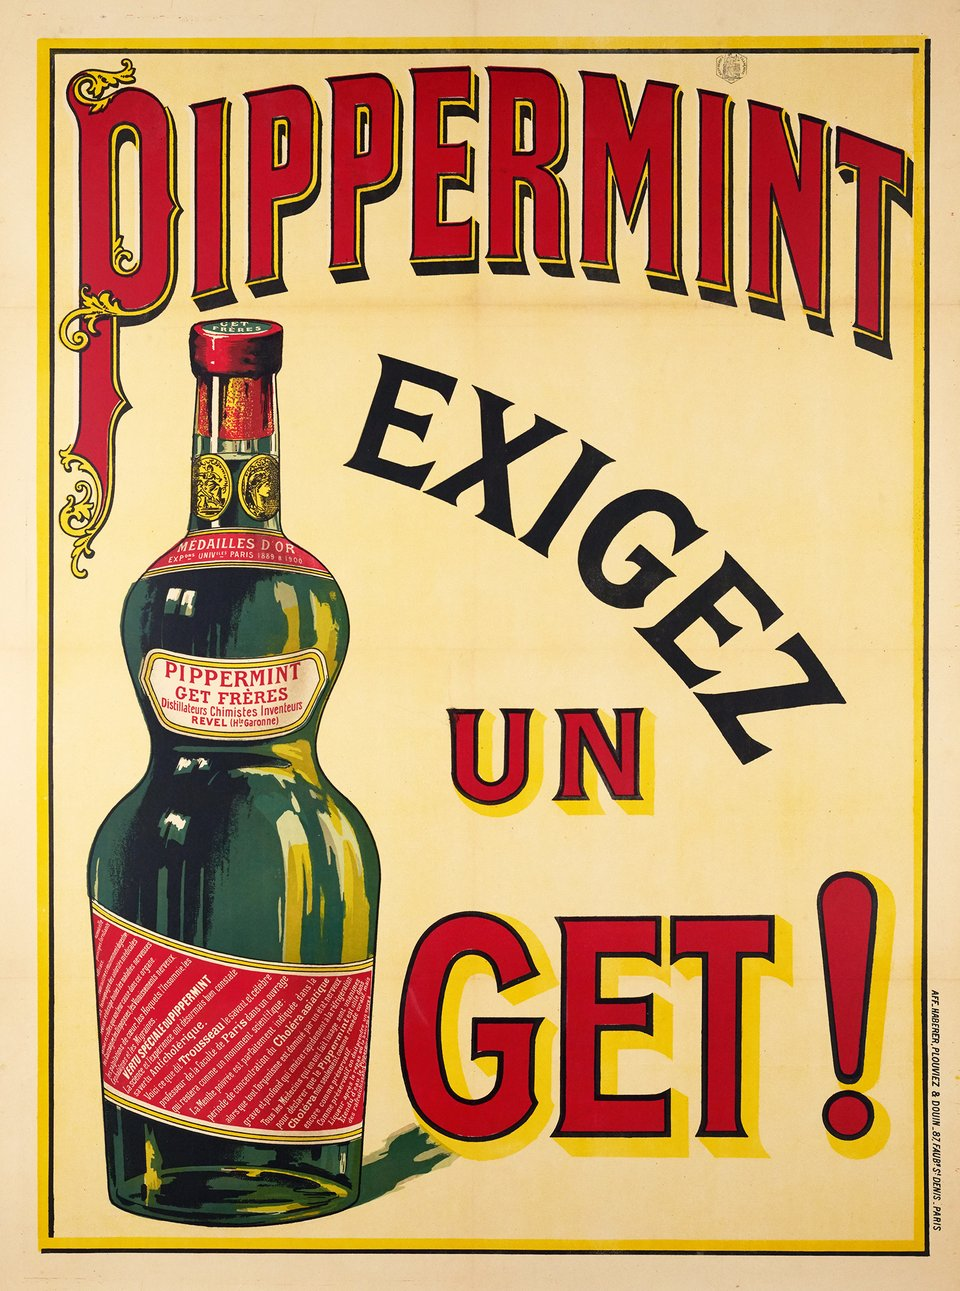 Pippermint, Exigez un Get! – Affiche ancienne – ANONYMOUS – 1900